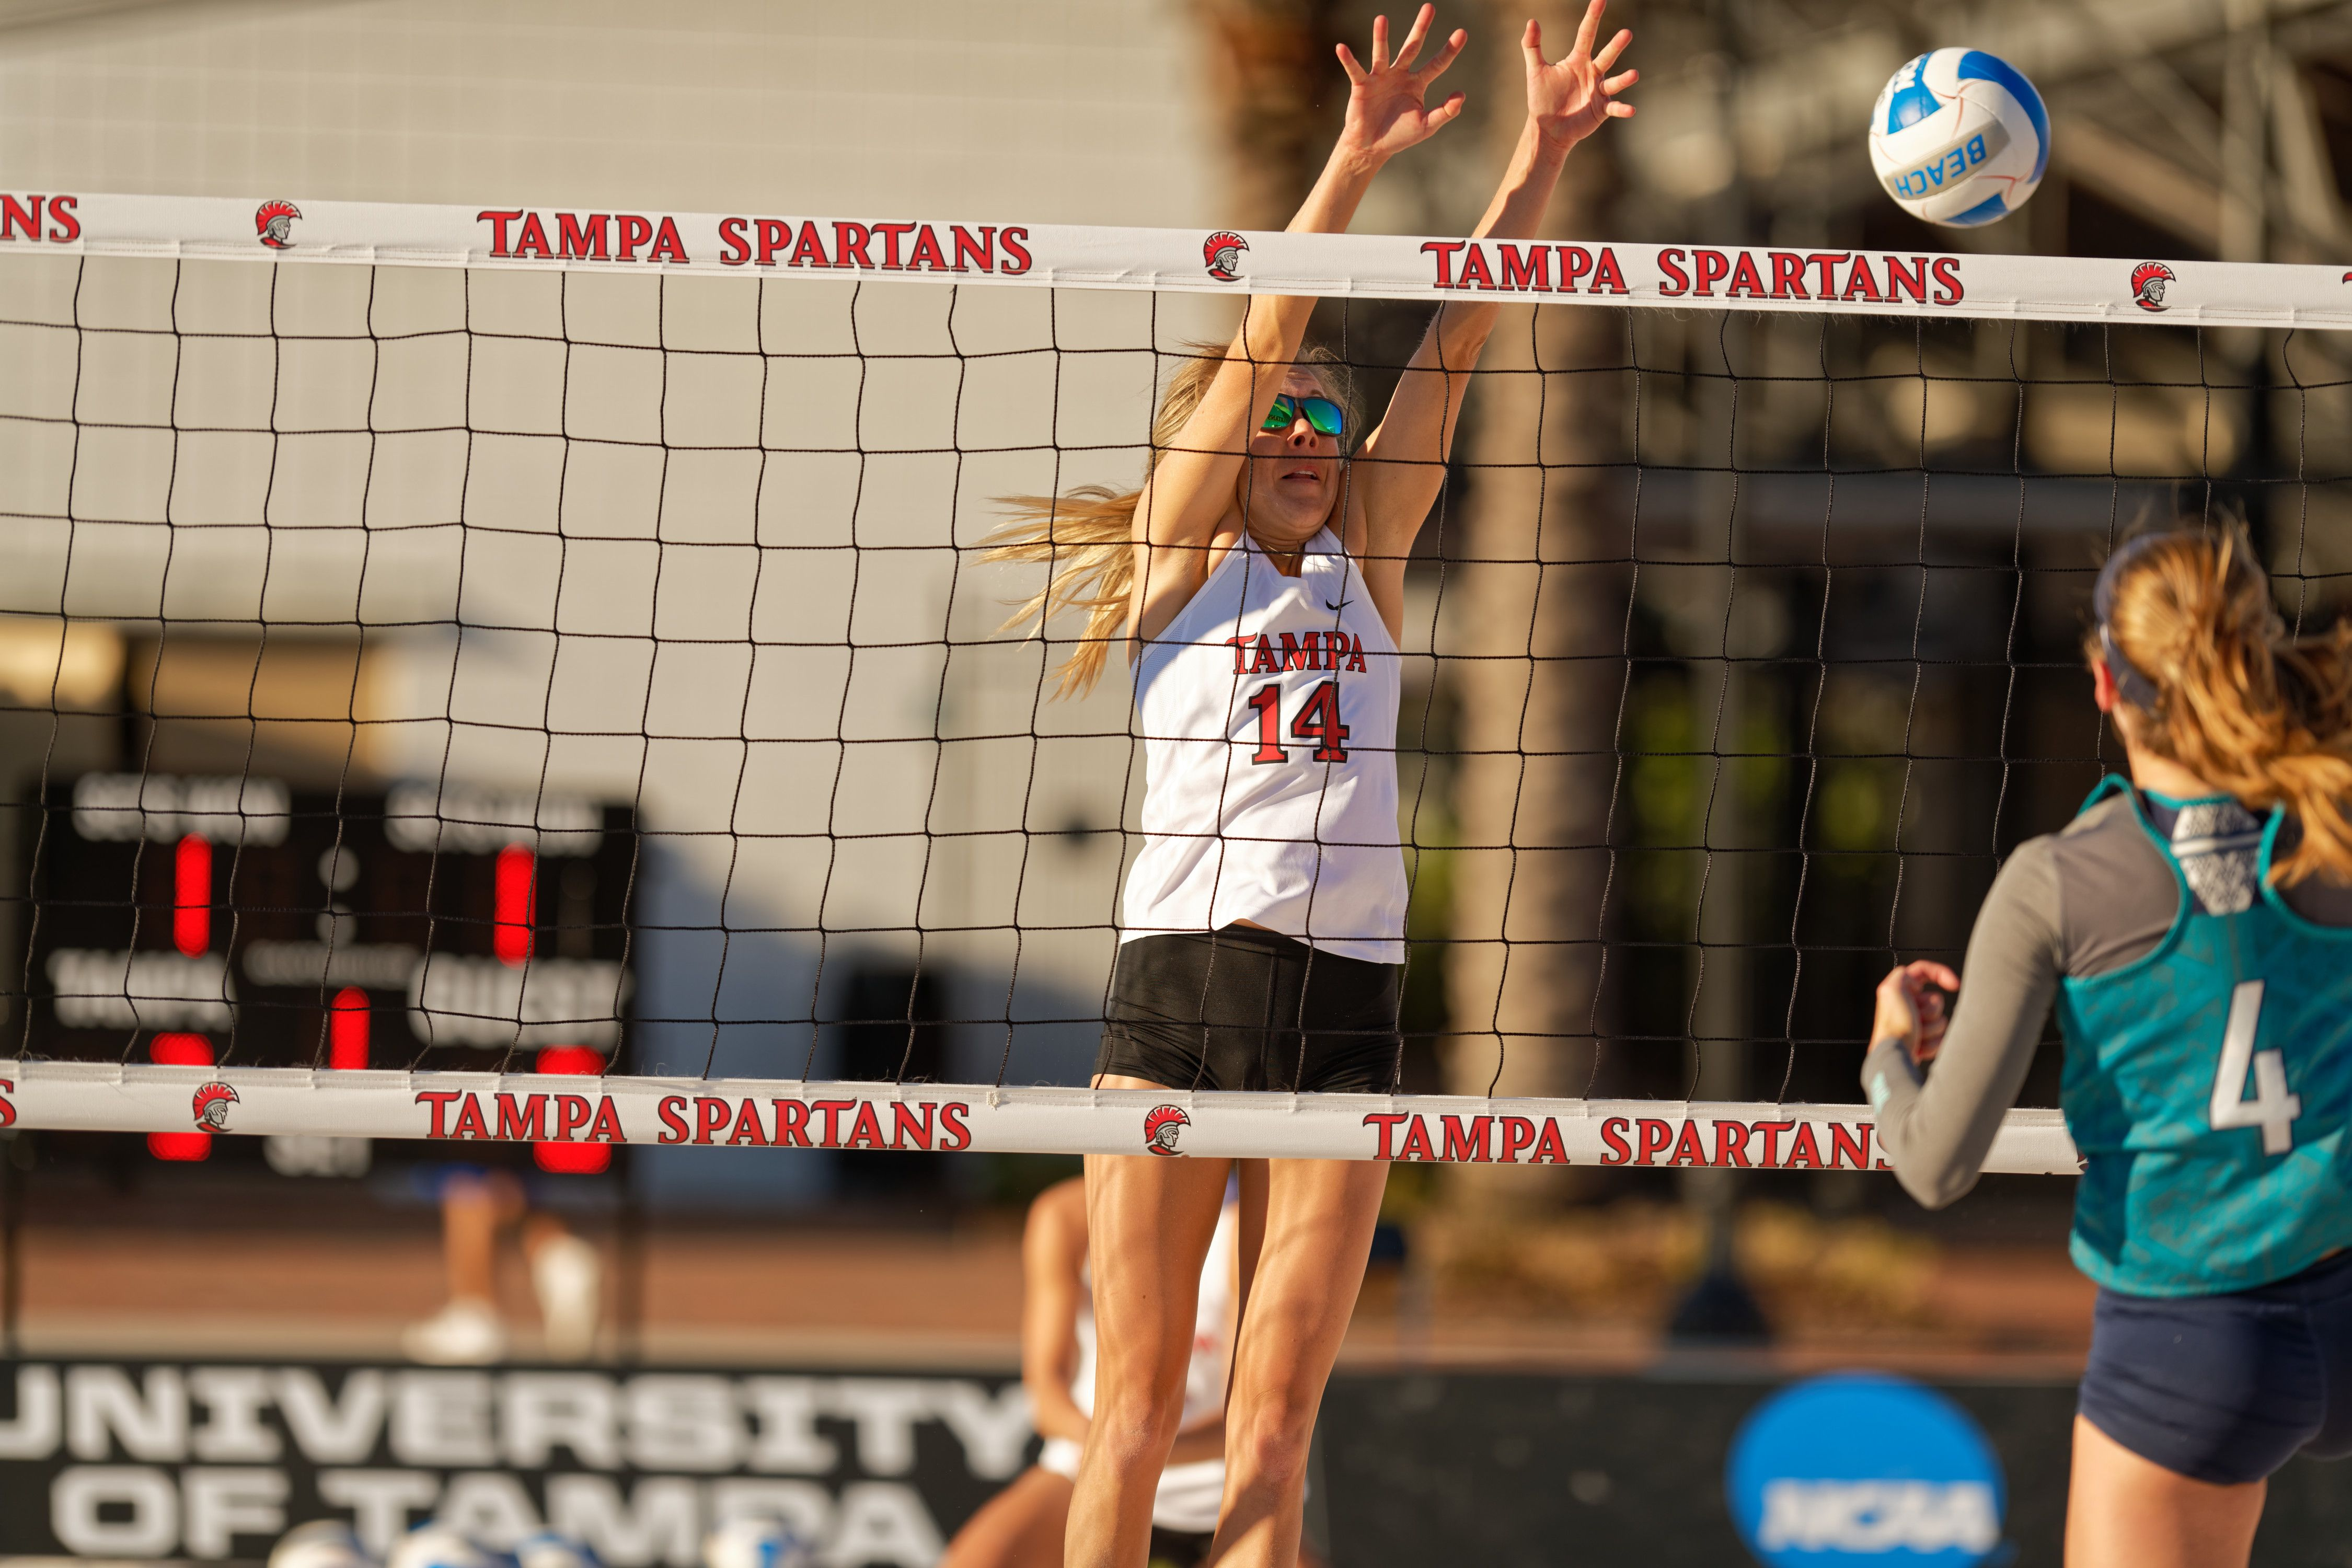 University Of Tampa Division I Beach Volleyball Custom Top Net Tape For Beach Volleyball University Of Tampa Beach Volleyball Tampa